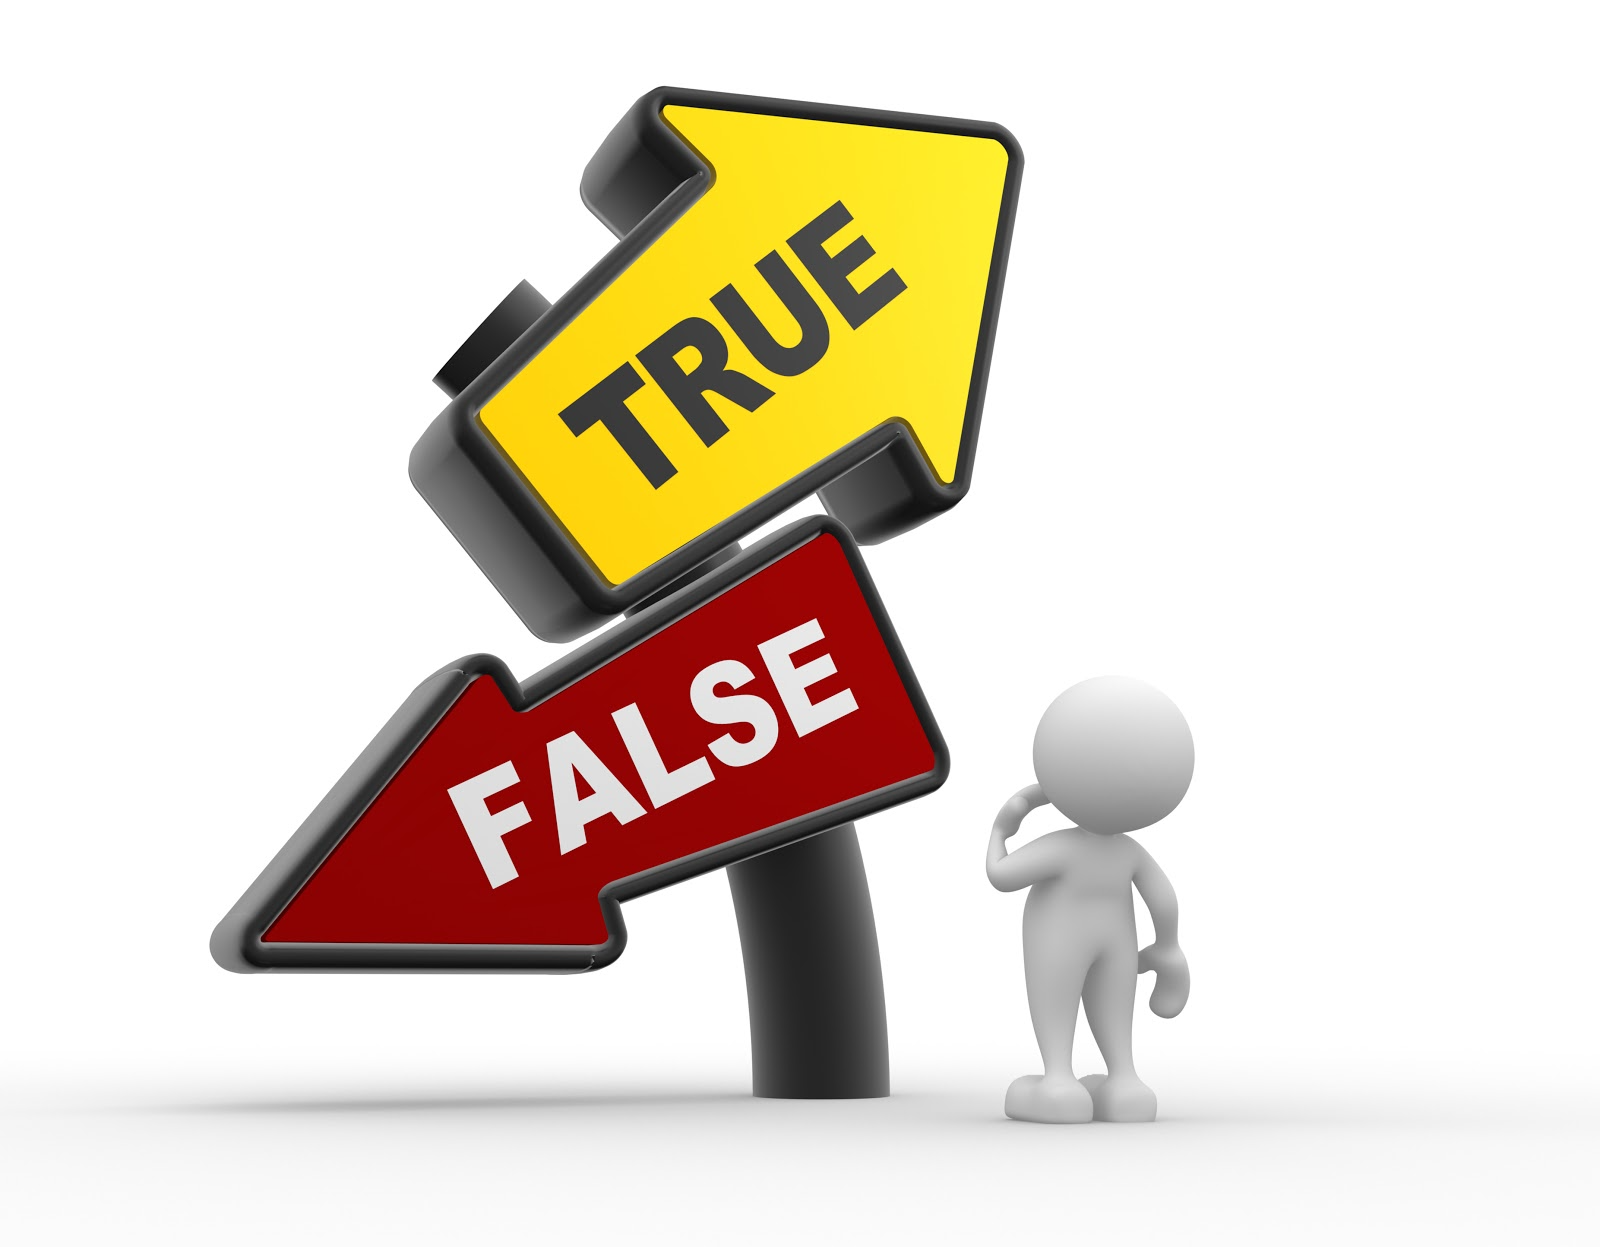 How to Distinguish between Reliable and Unreliable Sources Online